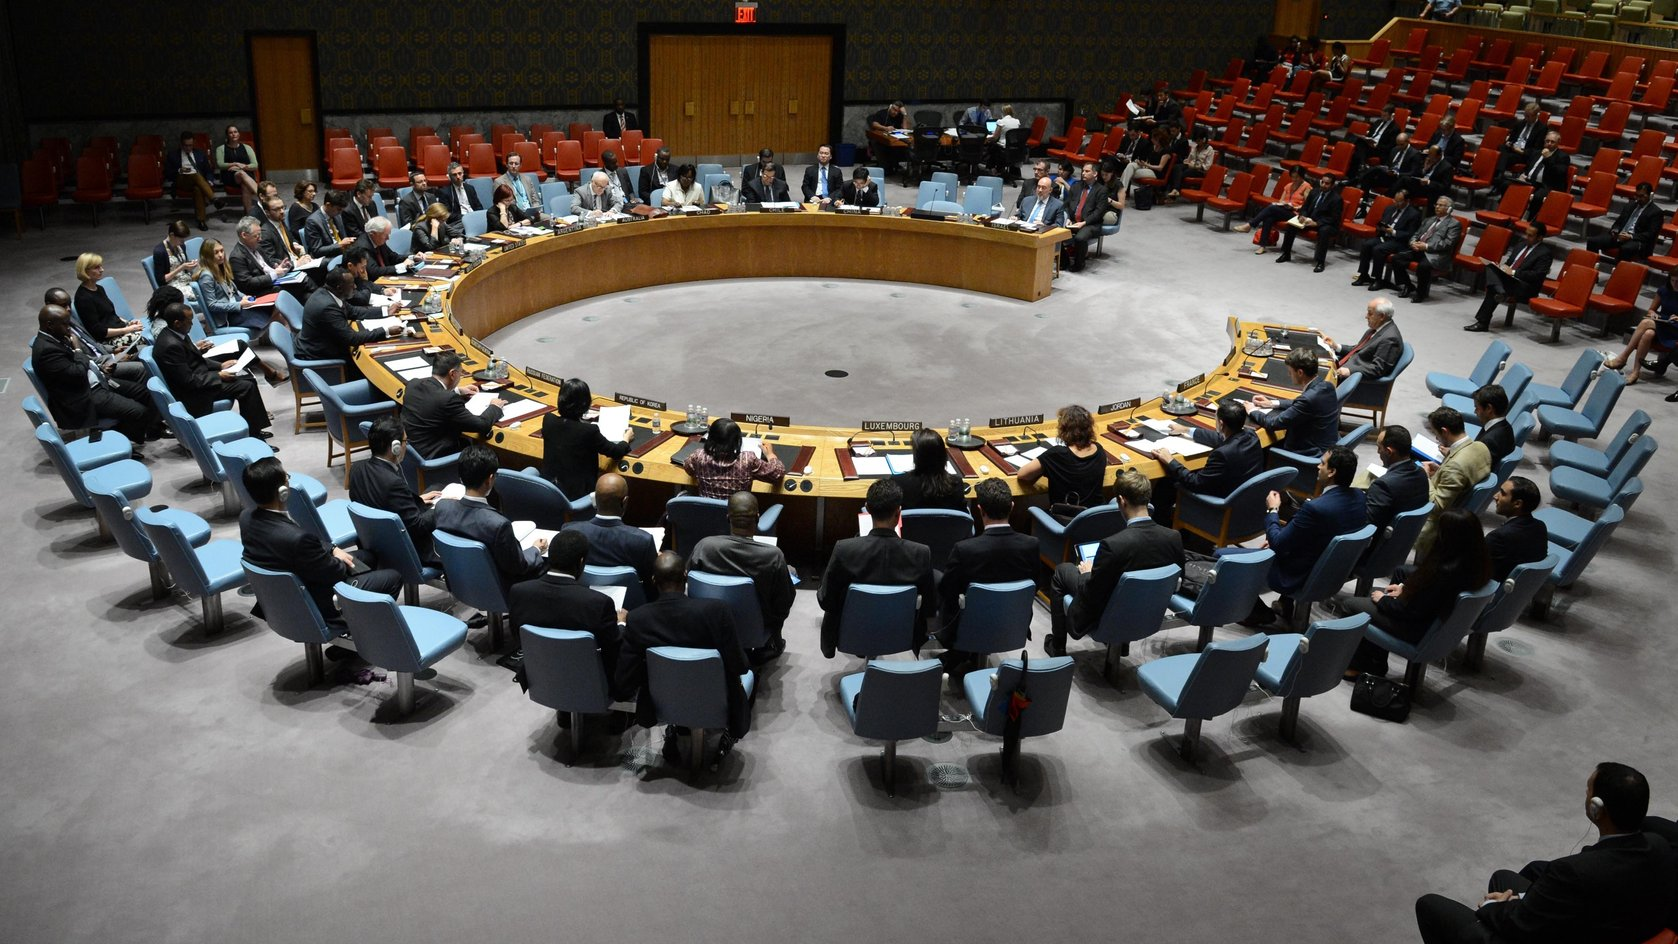 NEW YORK, July 28, 2014 (Xinhua) -- The UN Security Council holds an emergency meeting on the situation in the Middle East, at the UN headquarters in New York, on July 28, 2014.